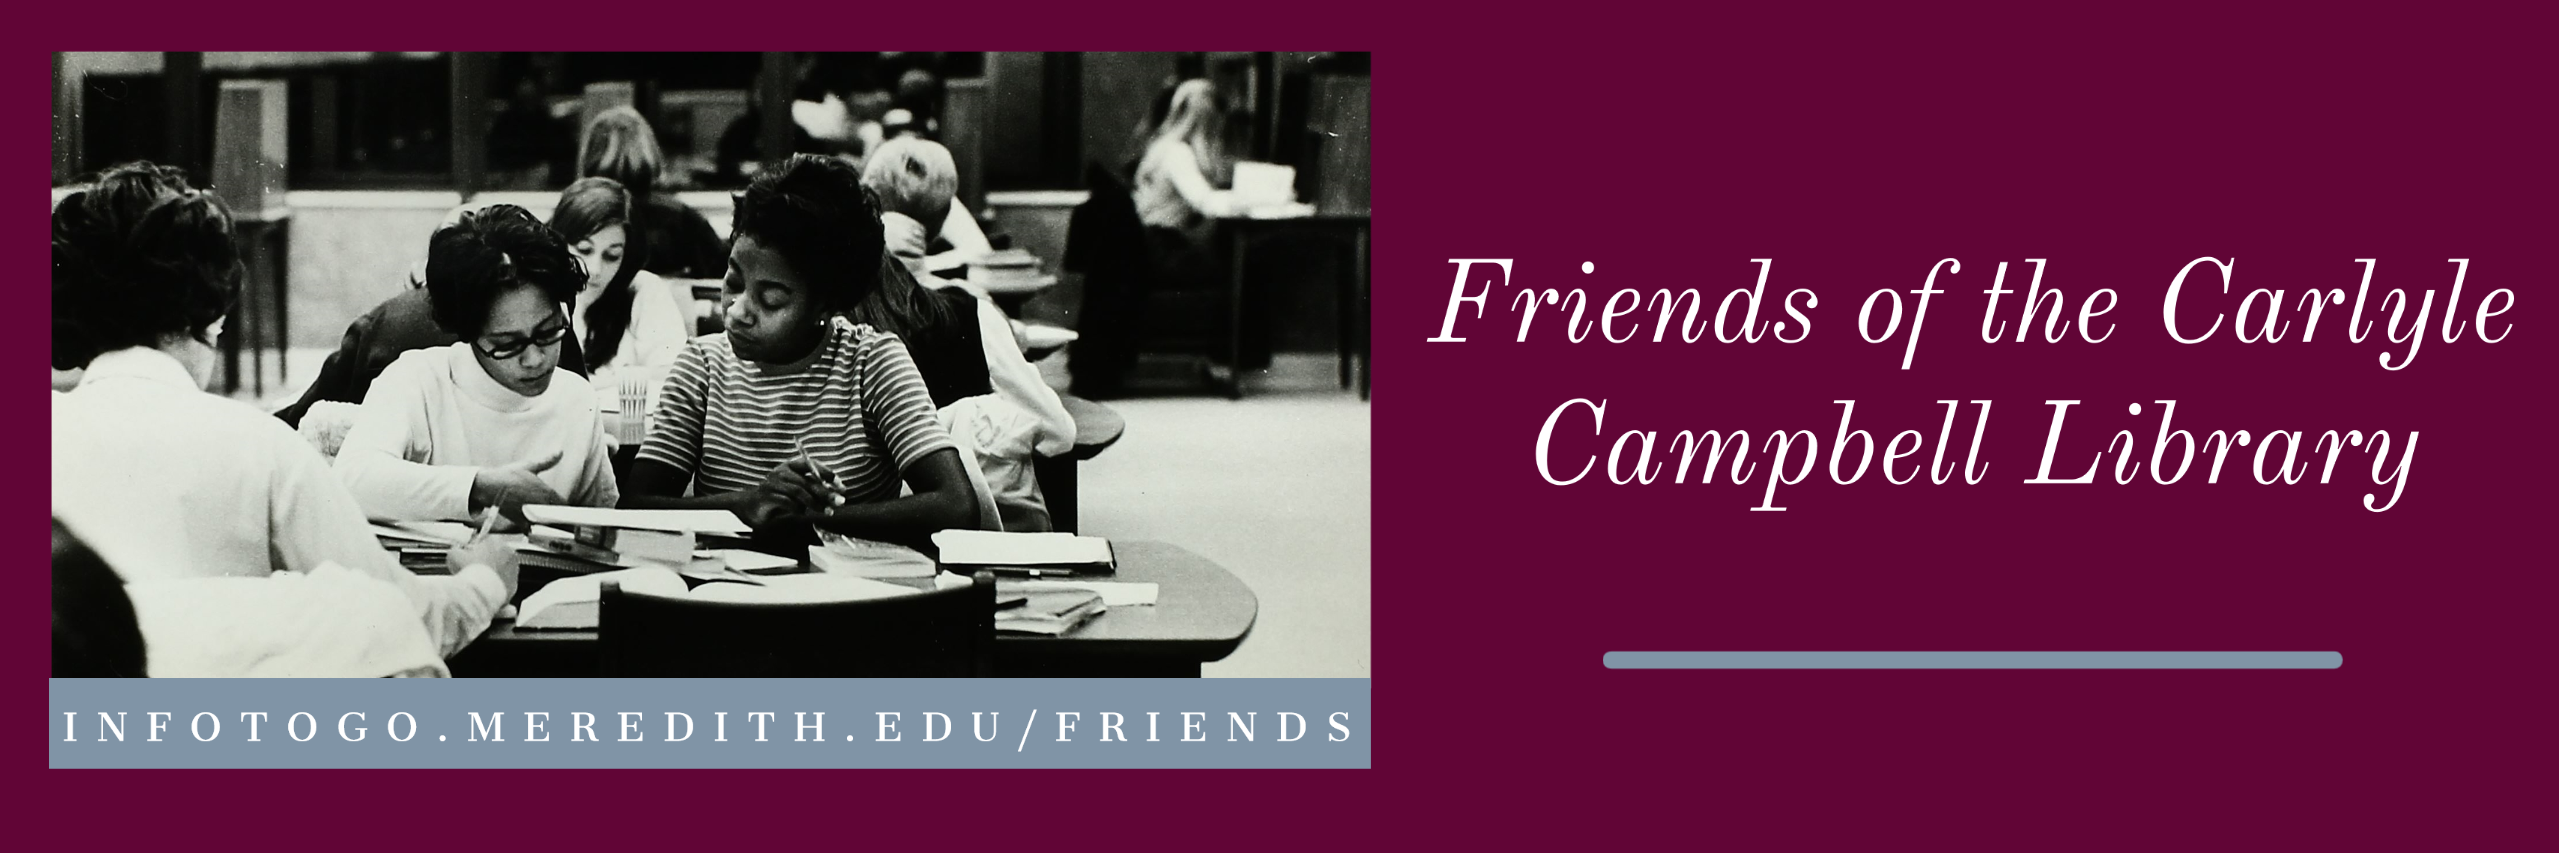 Friends of the Carlyle Campbell Library